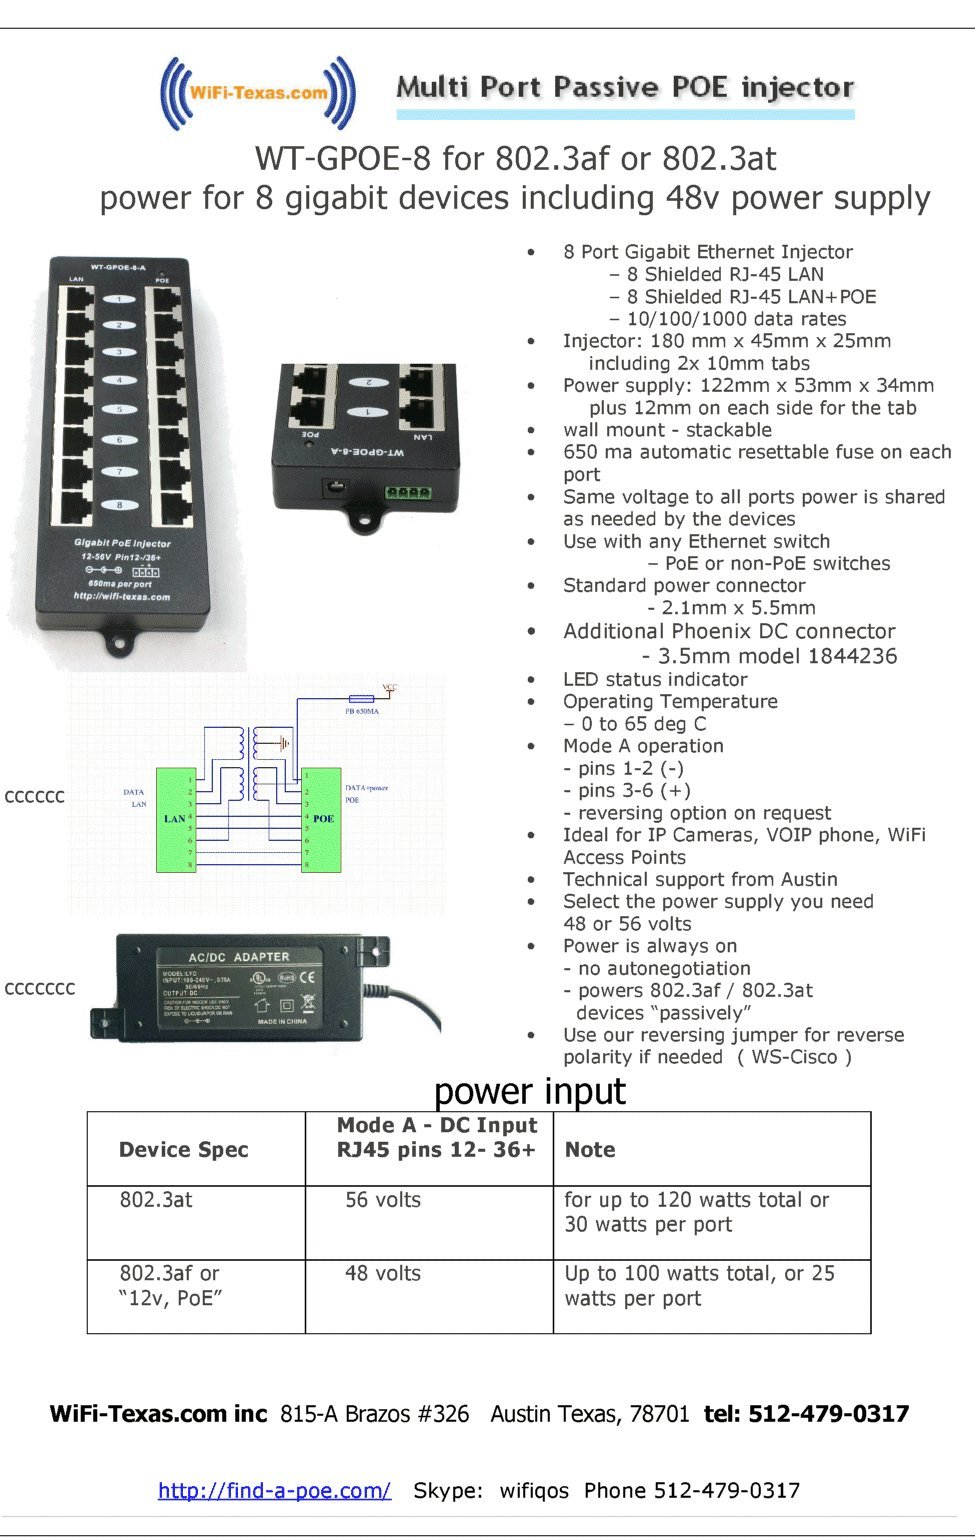 WT-GPOE-8 Multi Port Gigabit PoE Injector with 8 Ports for Power and Data To 8 Devices, Add Power over Ethernet To Any Switch-NOT INCLUDED.Use with External Power Supply for Passive or 802.3af Devices by WiFi-Texas (Image #3)